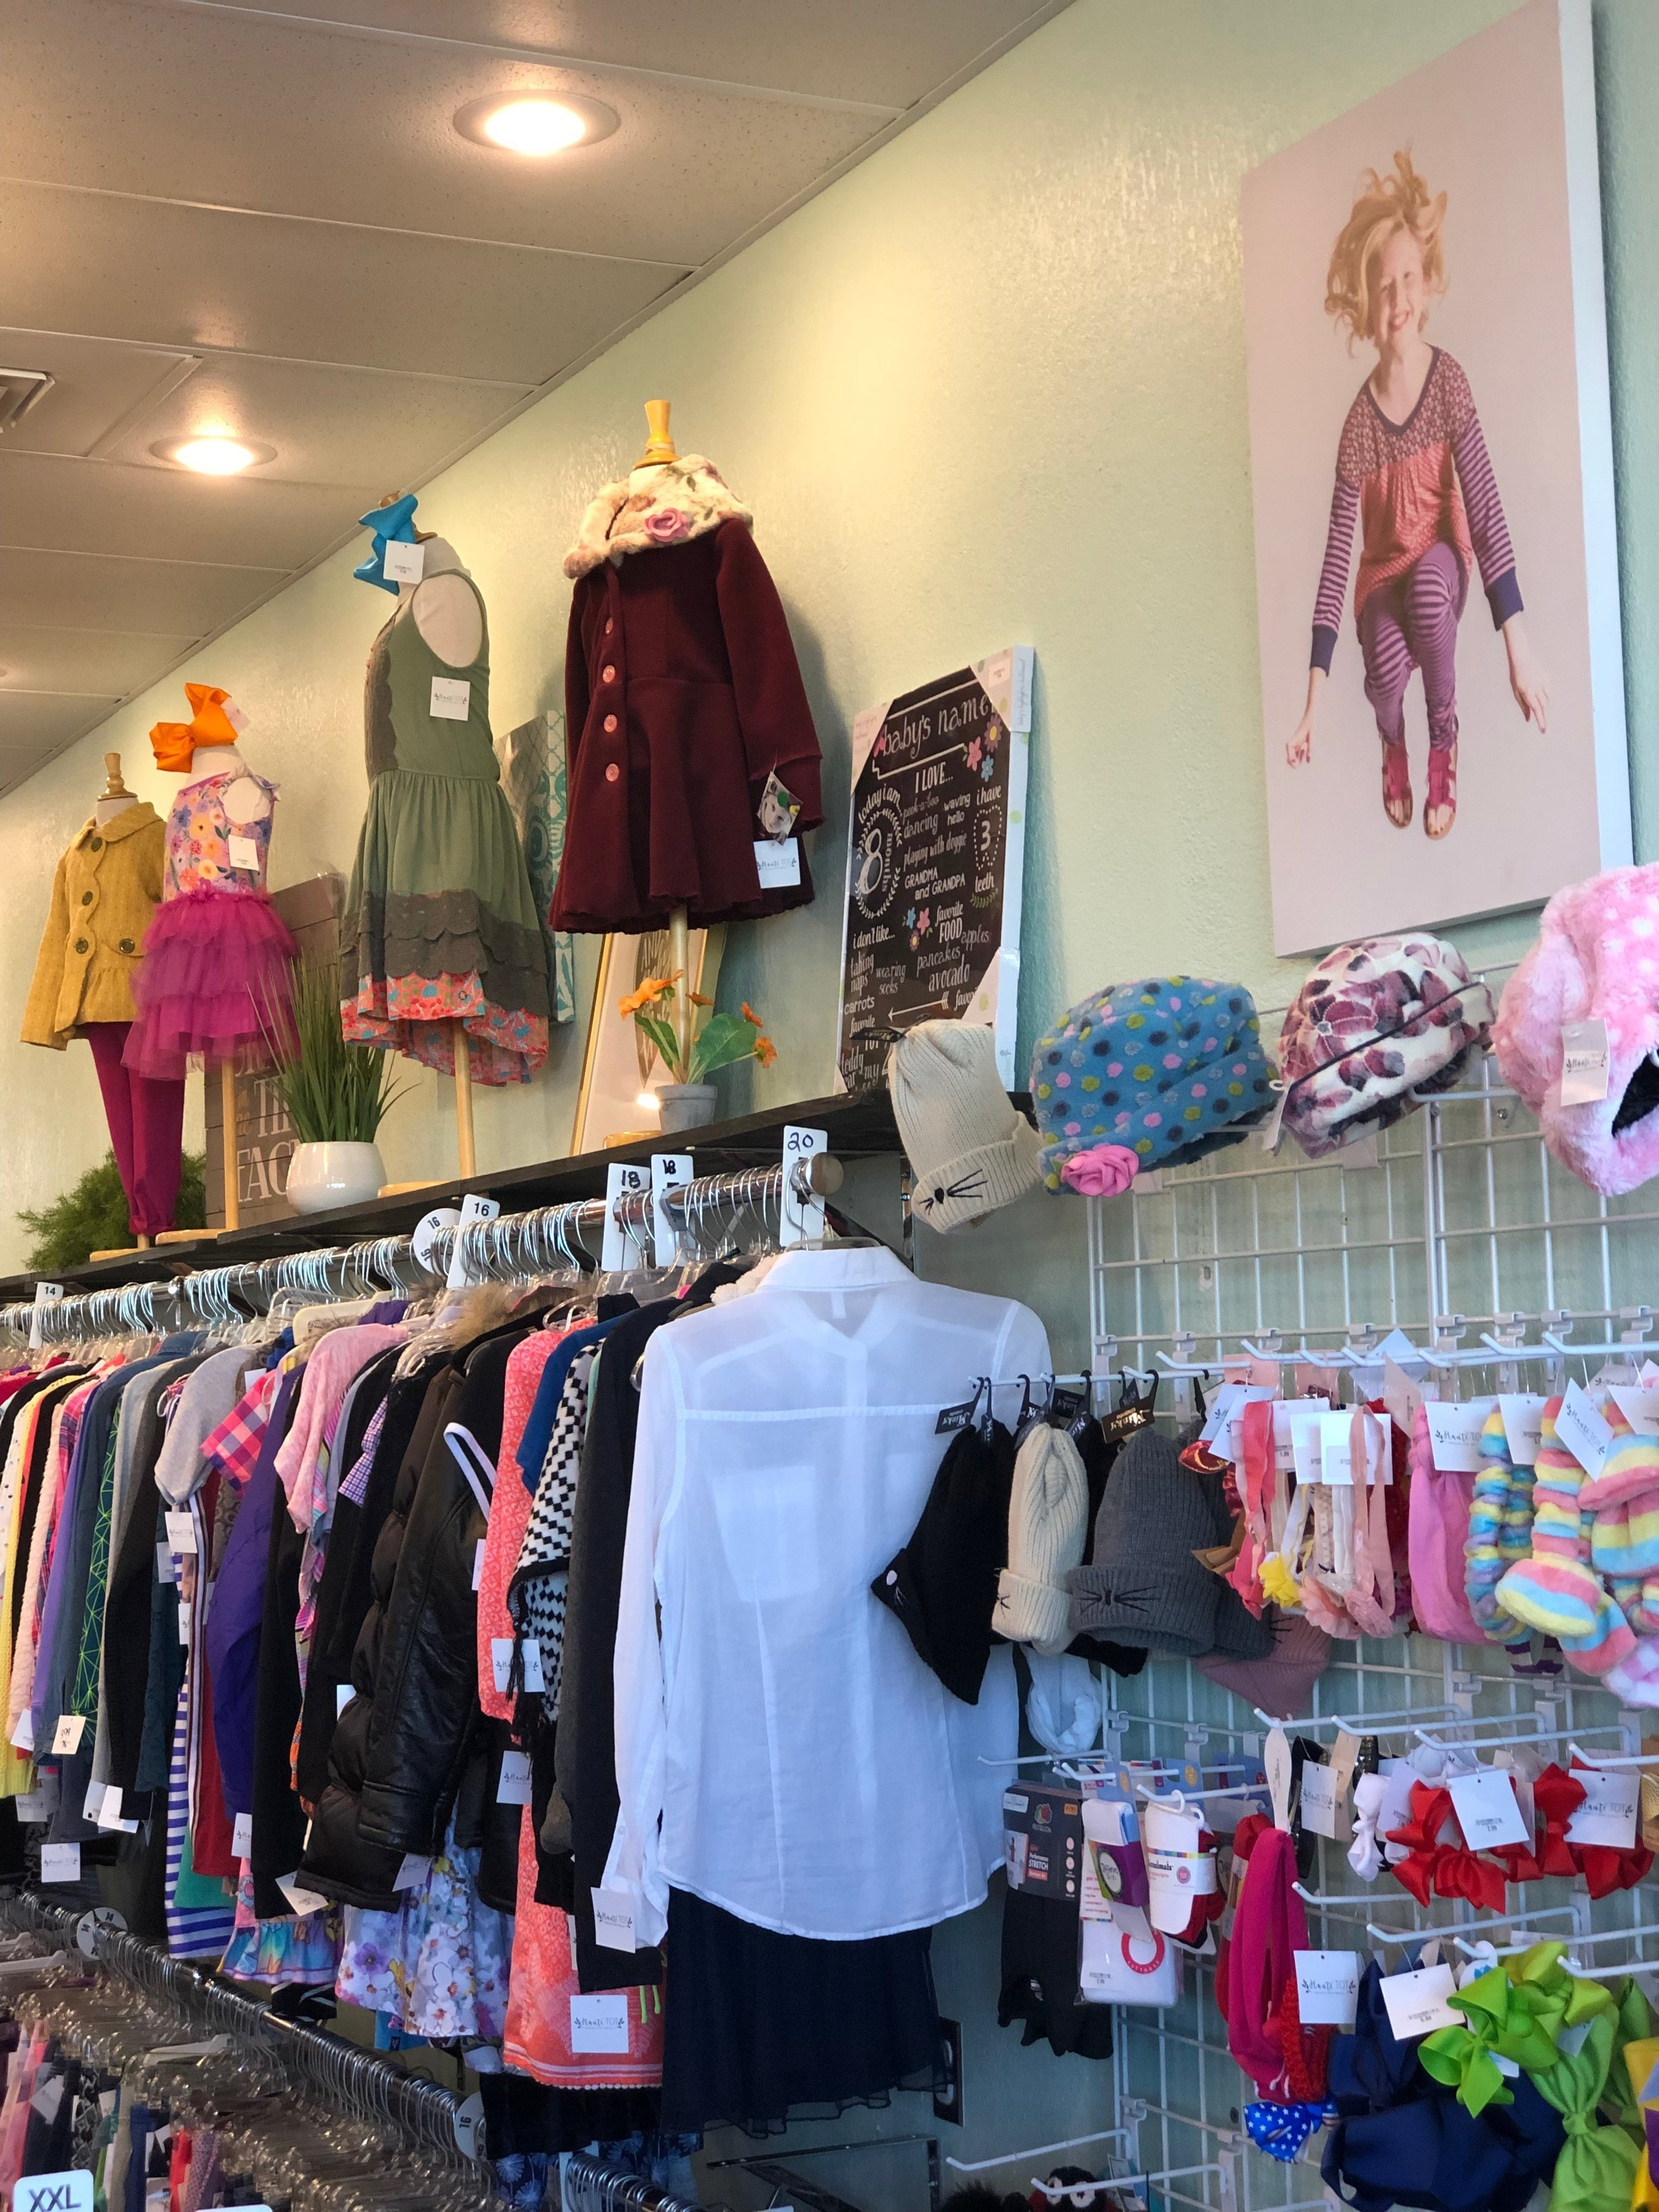 Our Store - We carry new and gently used clothing from size preemie to youth 16. Although some of our items are new with tags, the condition of our gently used merchandise is so exceptional you might not be able to tell the difference! You won't believe our brands, prices, and like-new equipment, furniture, toys and books too!